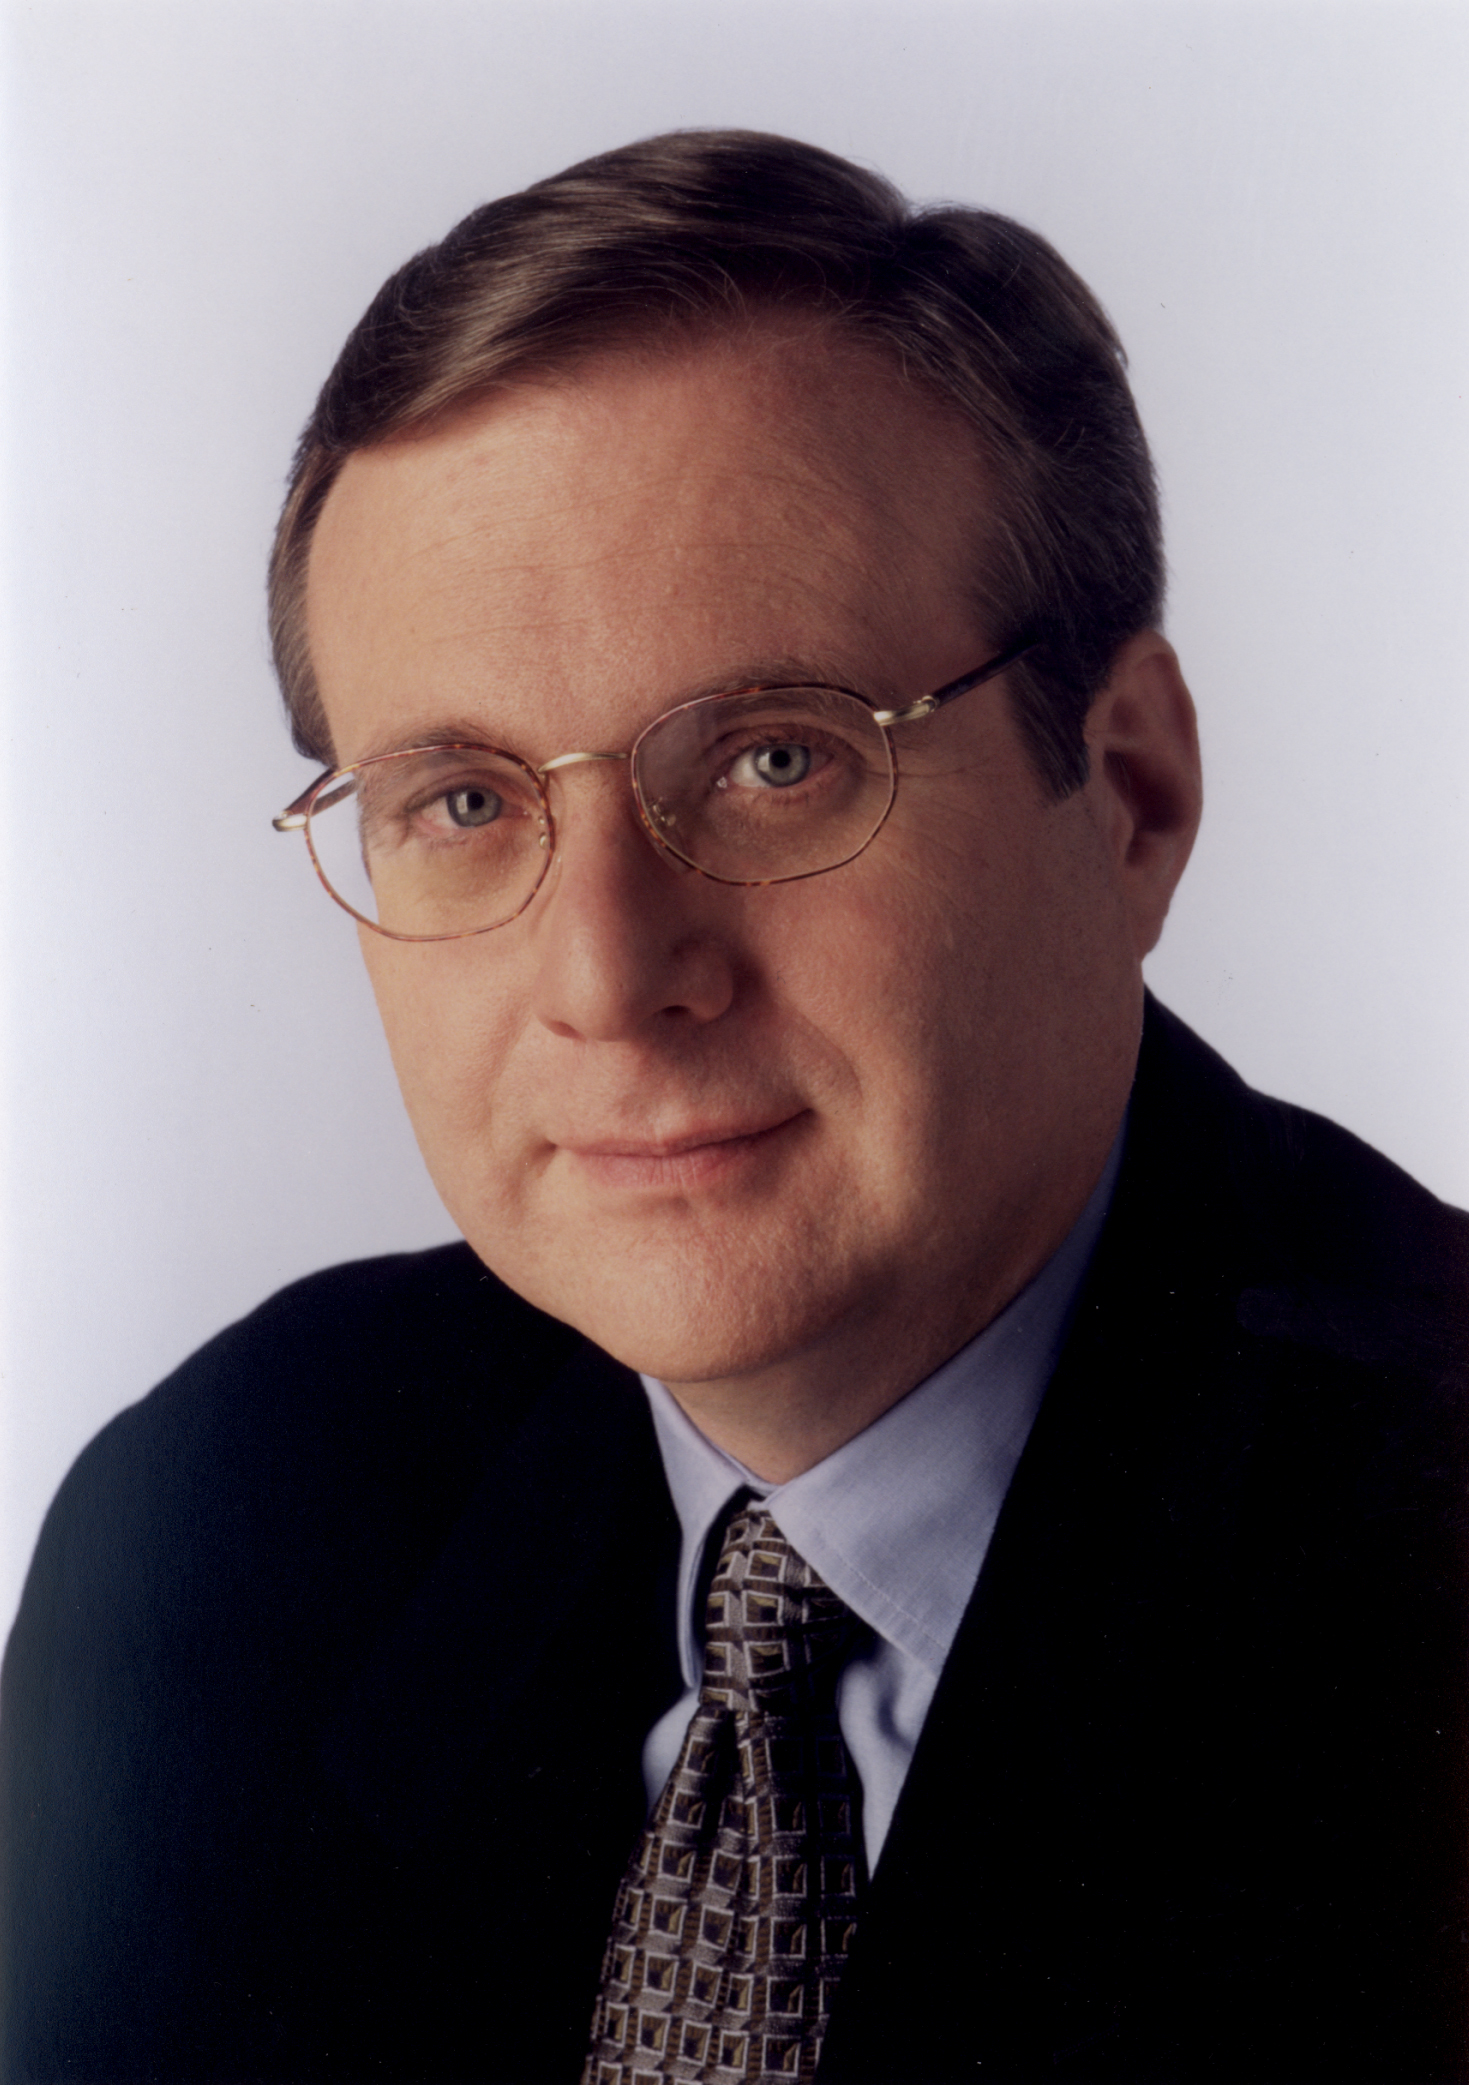 Microsoft co-founder Paul Allen sues Google, Apple, nine others for web patent breach